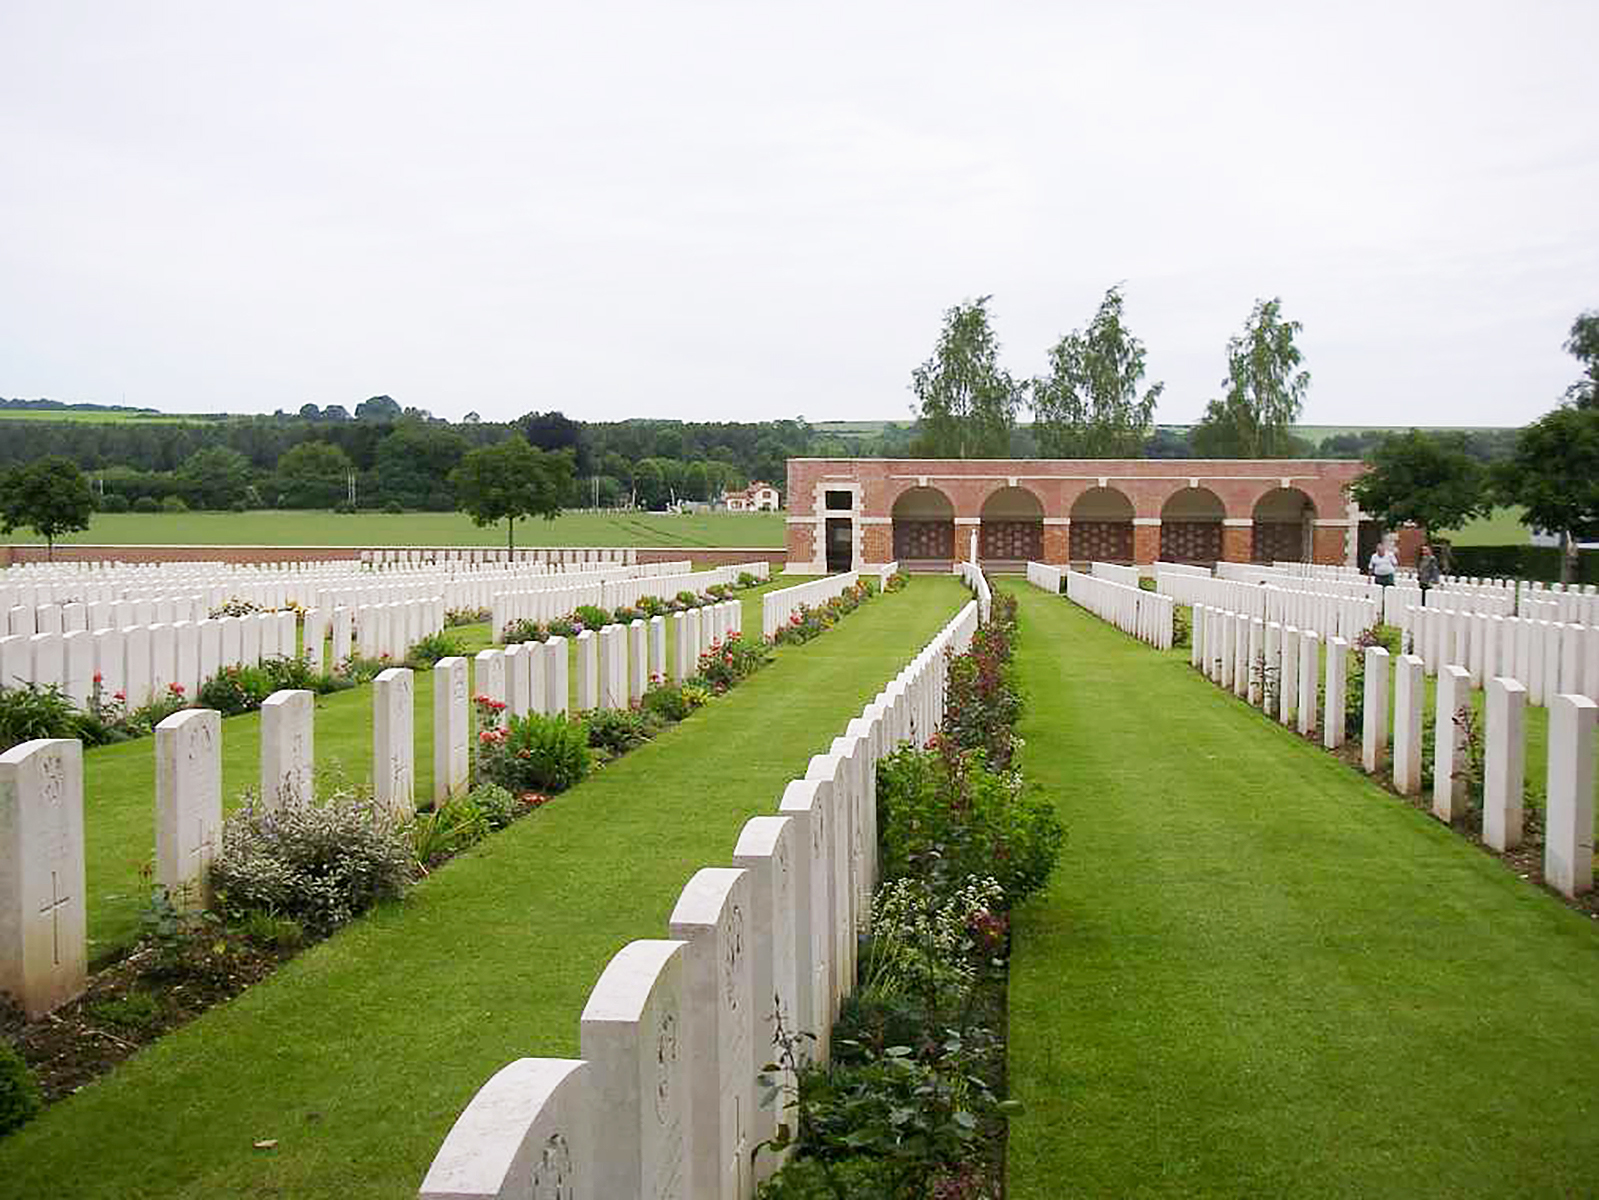 Heilly Station Cemetery